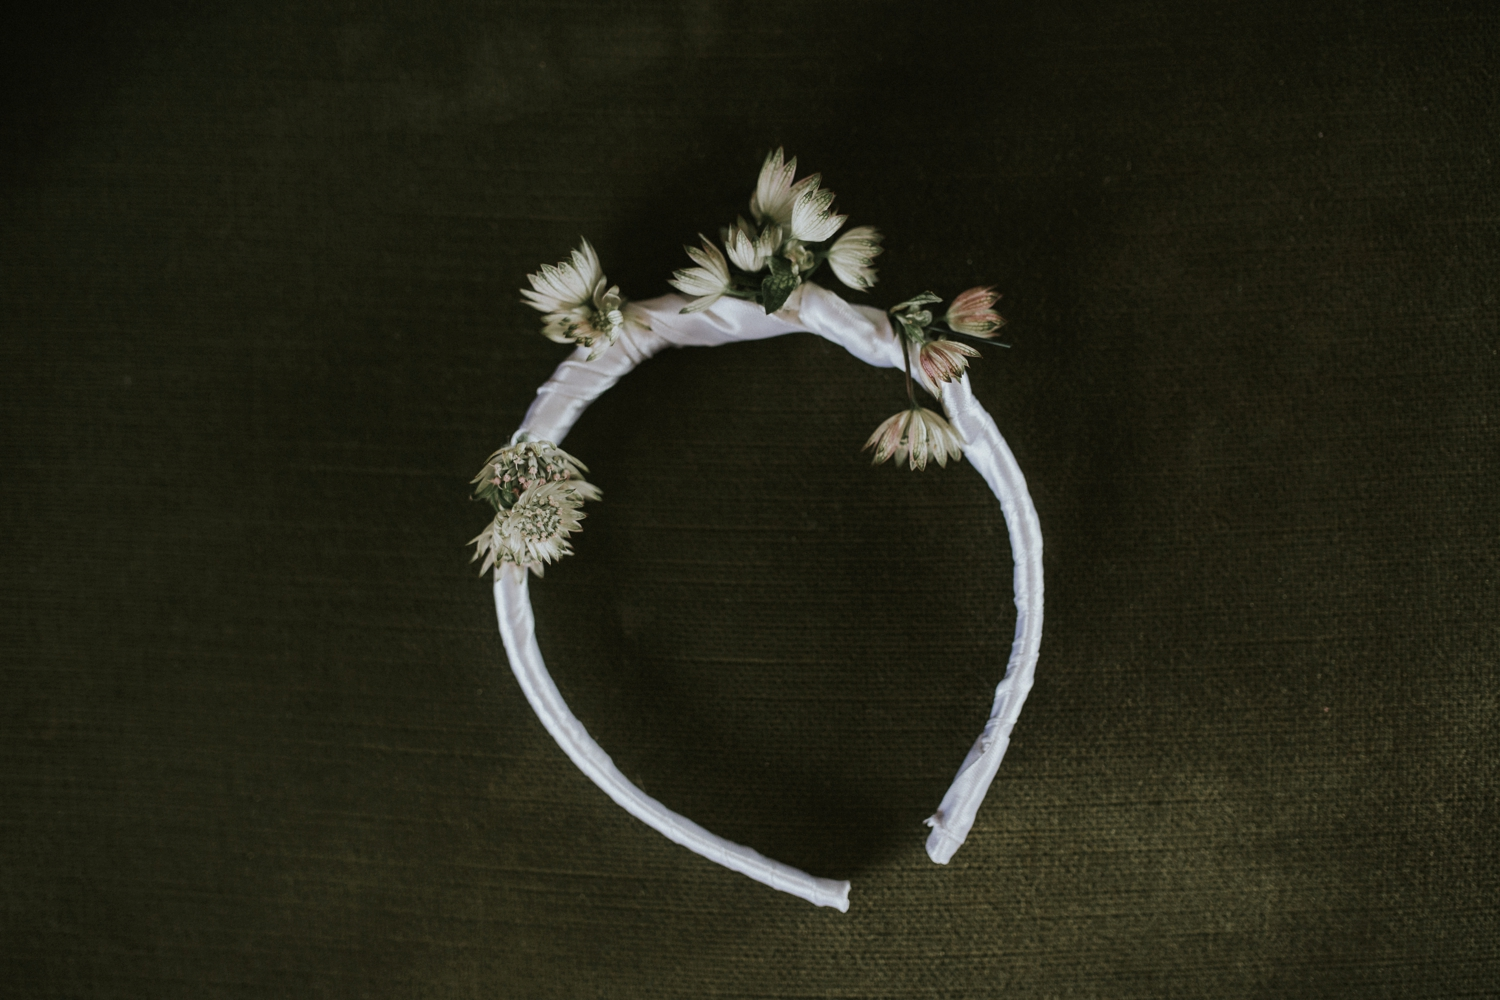 Flower Girl's Alice Band Flower Crown Fynbos White Ribbon